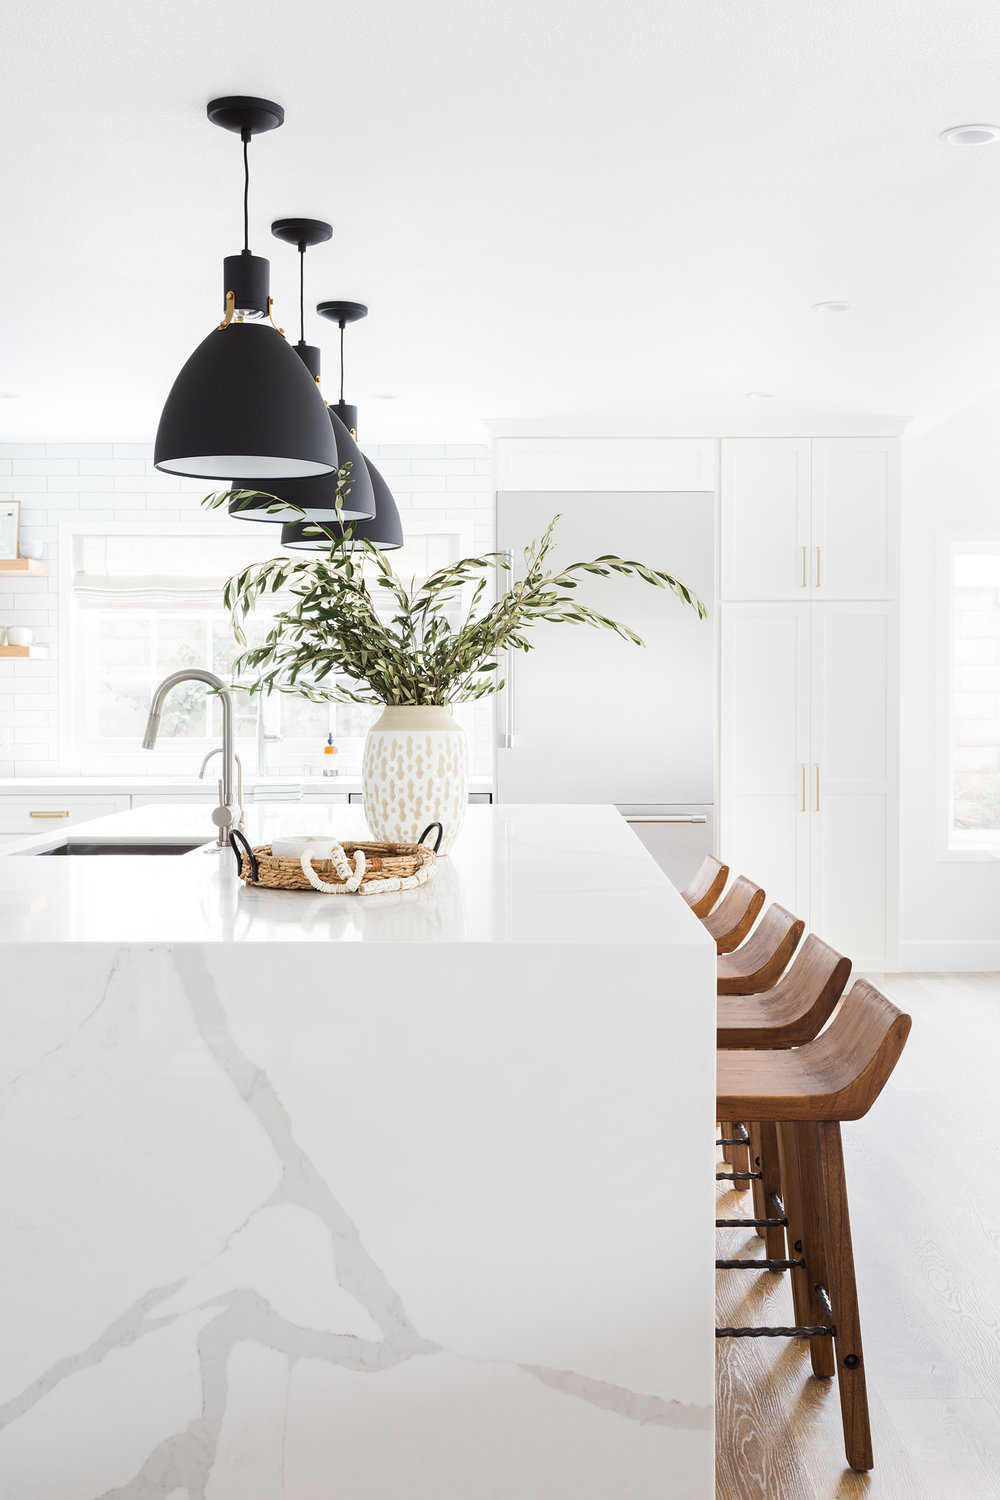 Oak Hills Kitchen Remodel: Modern white kitchen with subway tile + statement lighting by Lindsey Brooke Design